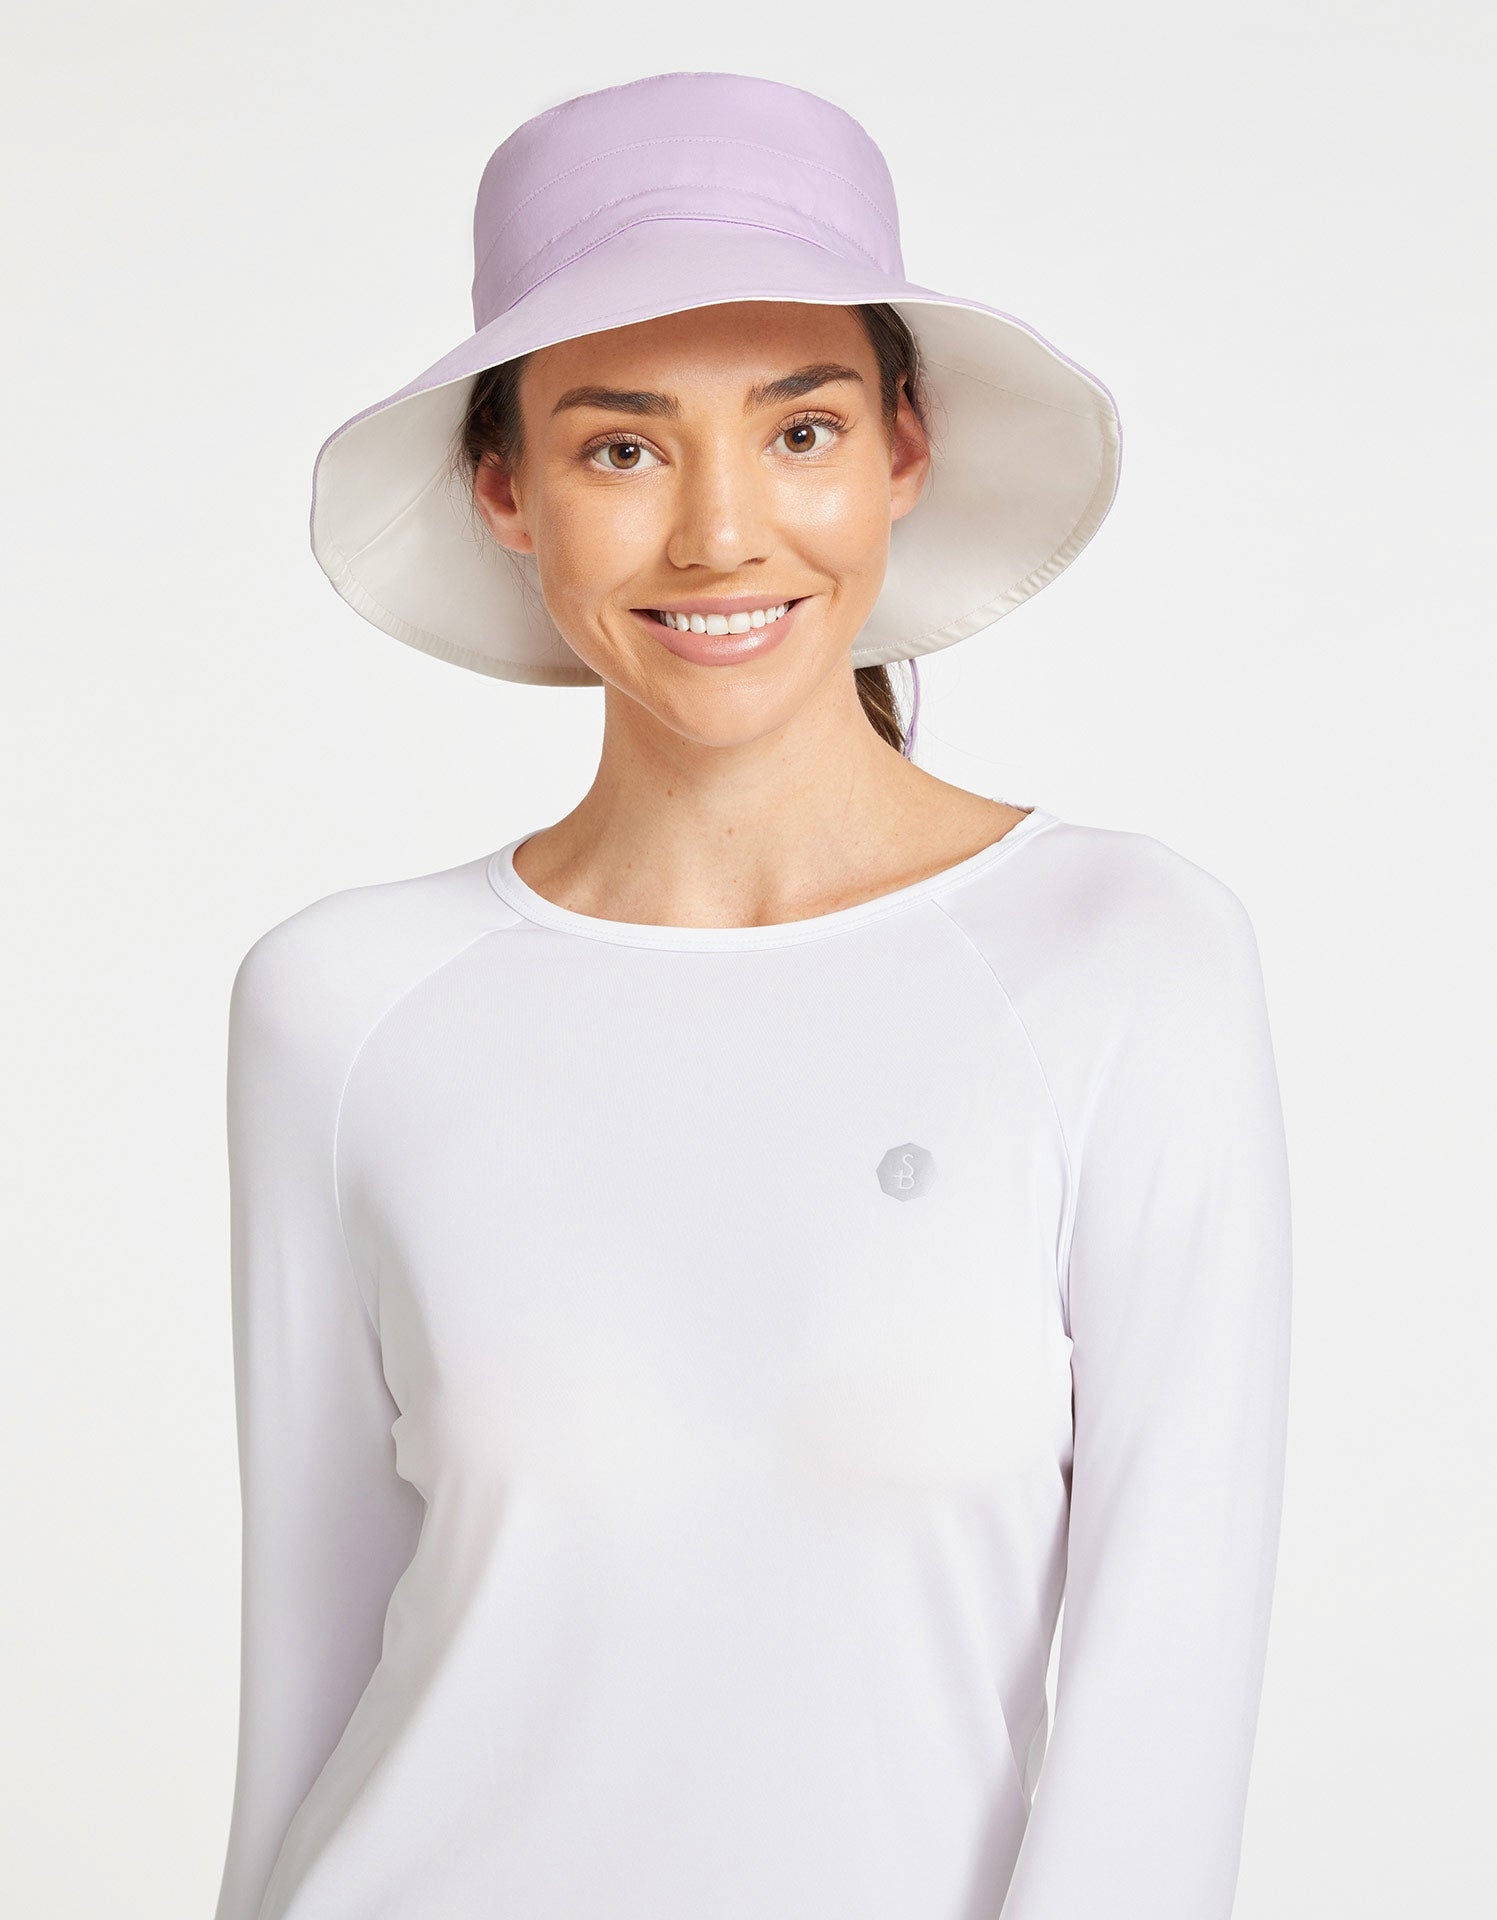 Solbari Sun Protection Women's UPF50+ Reversible Sun Hat in Lilac / Cream